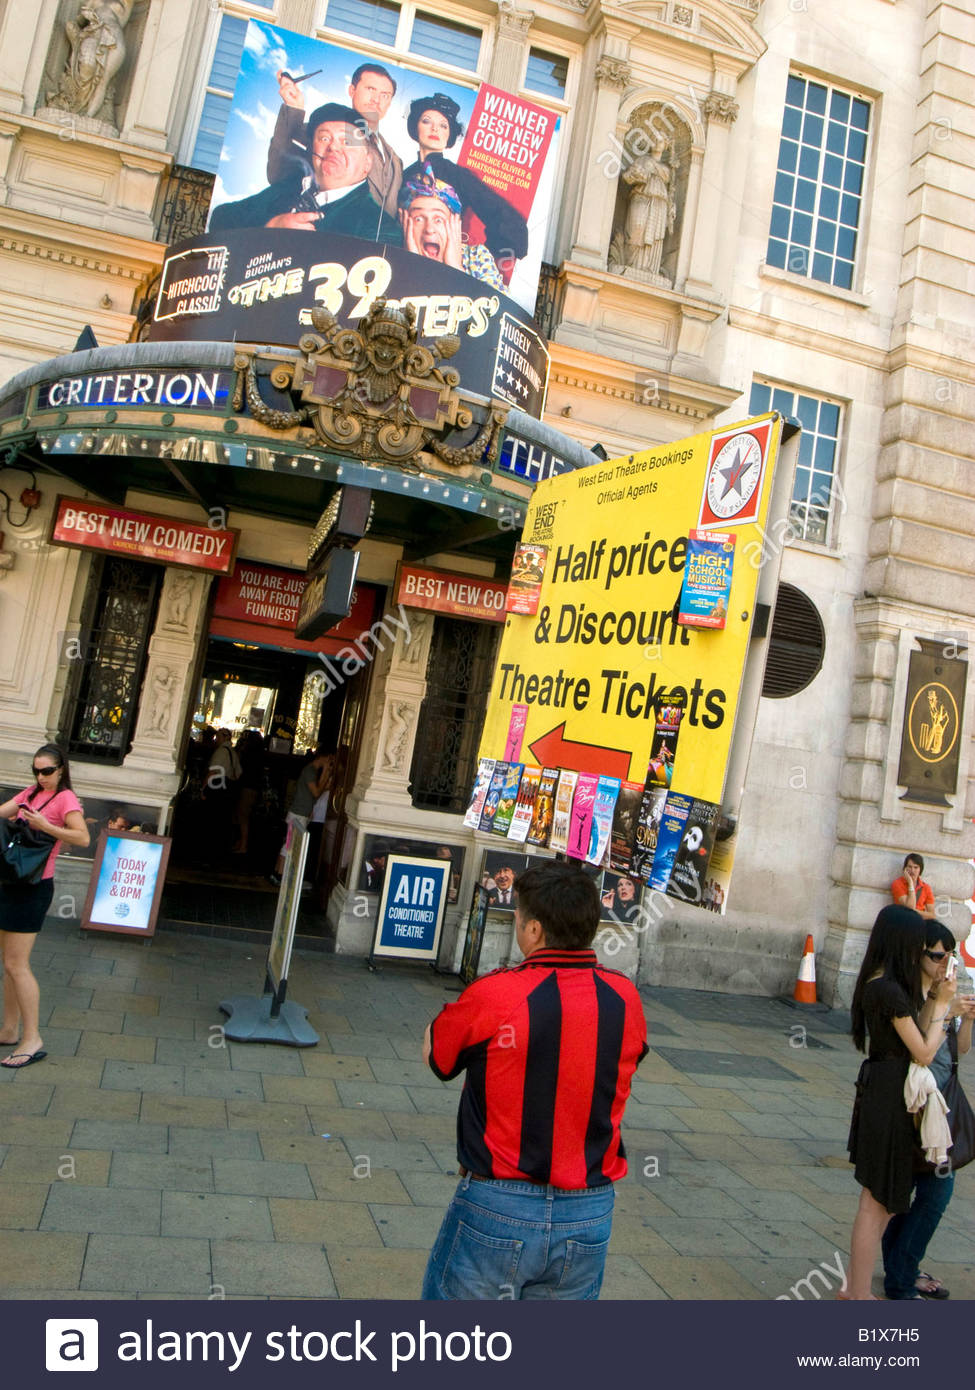 Half Price Theatre Tickets outside The Criterion Theatre in Picadilly Circus in London - Stock Image